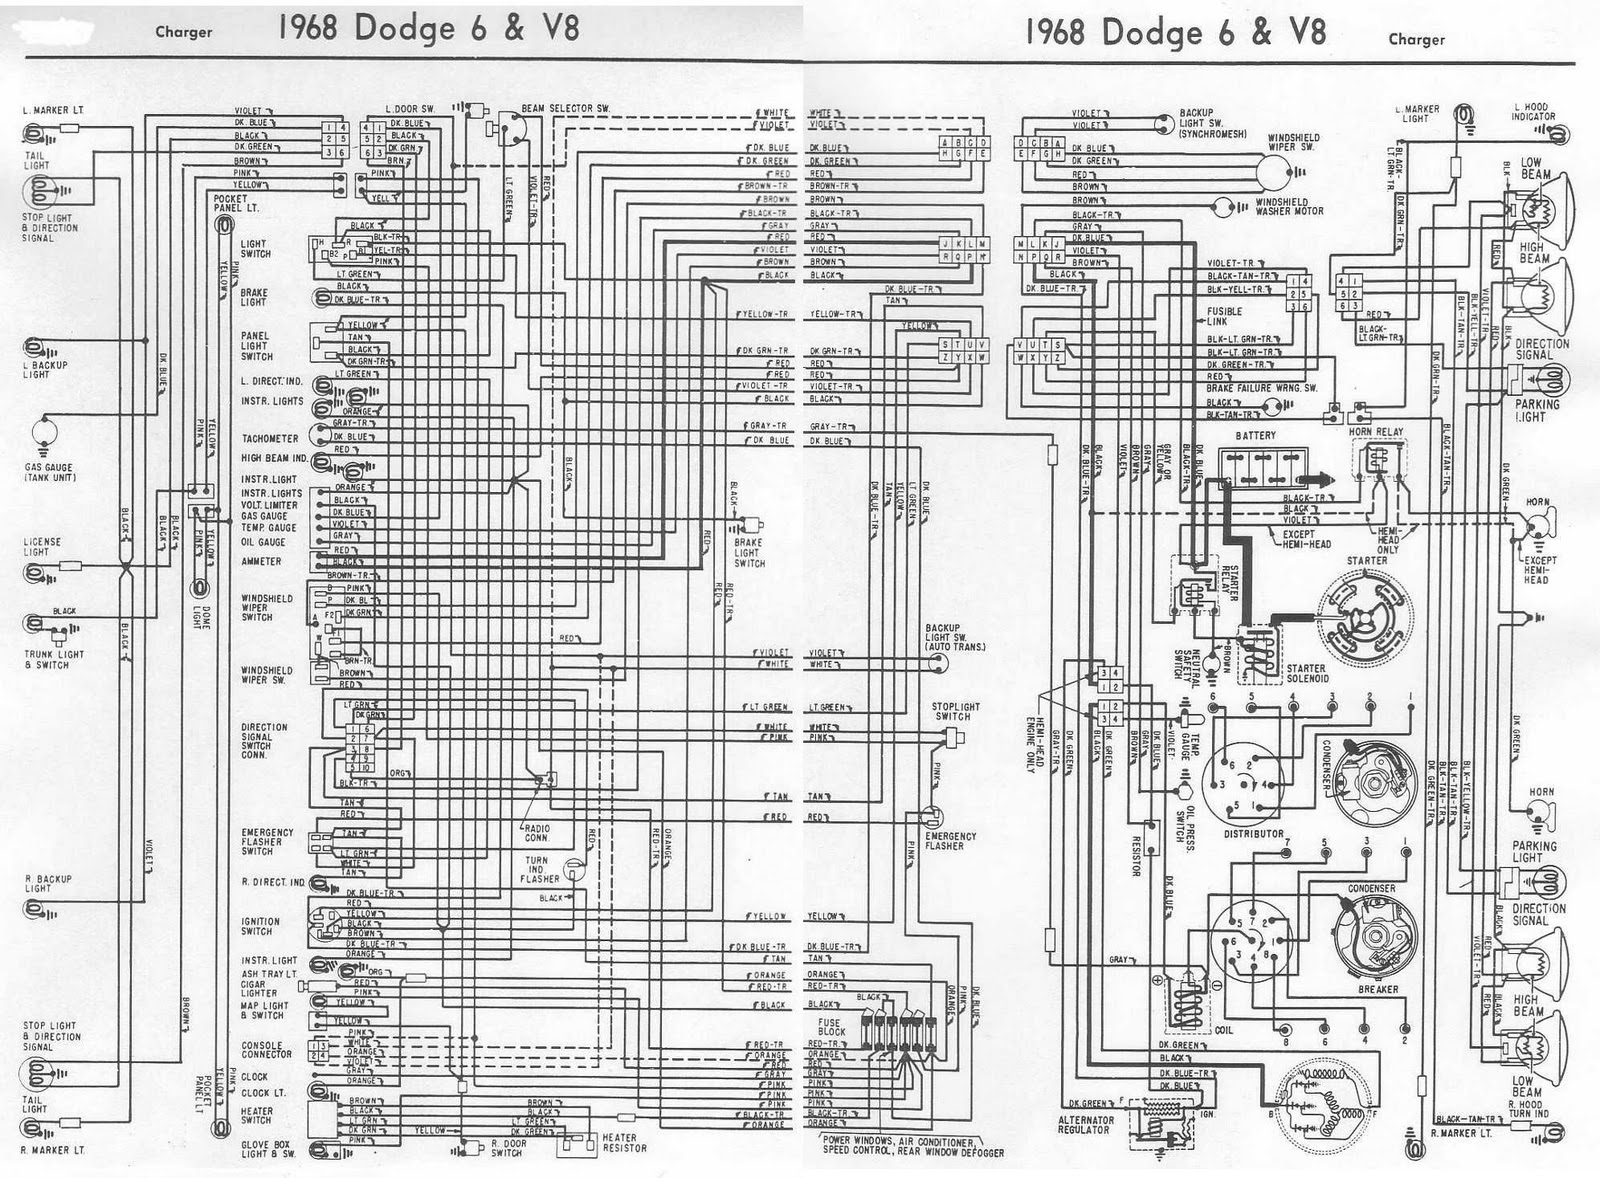 hight resolution of dodge charger 1968 6 and v8 complete electrical wiring diagram all about wiring diagrams 1967 chevy impala wiring diagram dodge ram alternator wiring